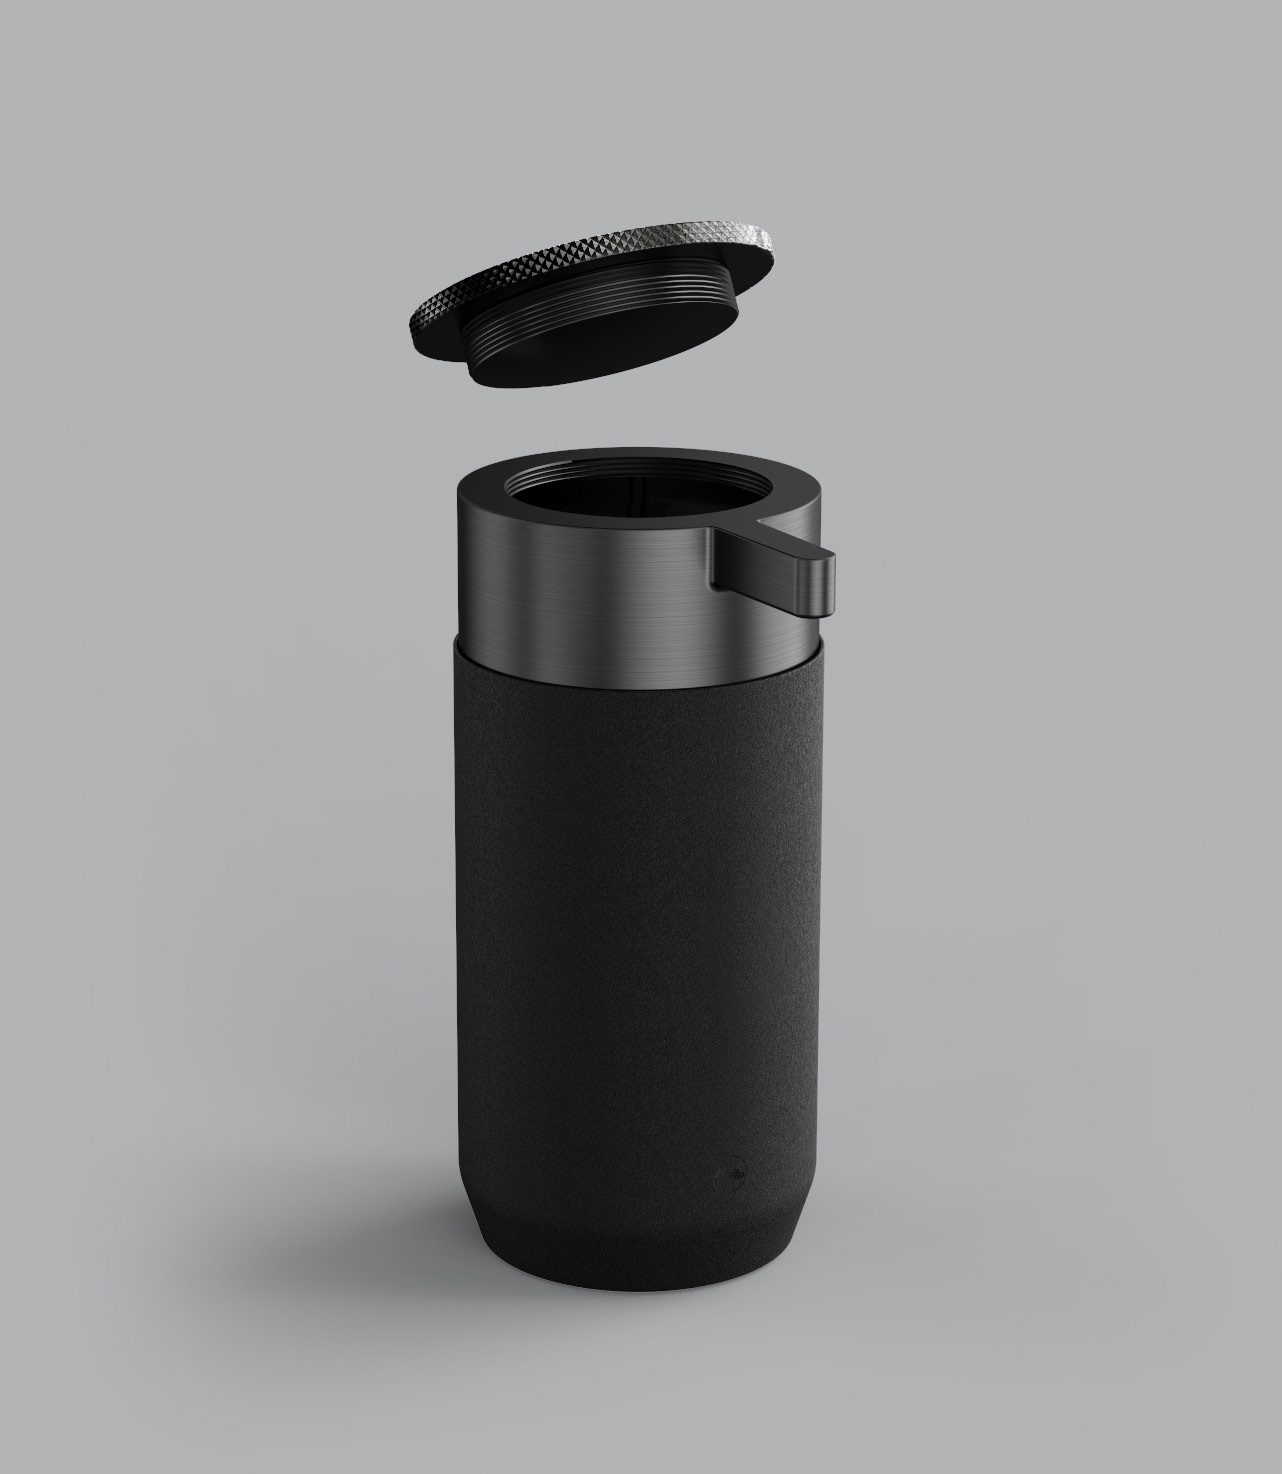 Soap dispenser – innovative mechanism allows for a large refill cap and no messy straw